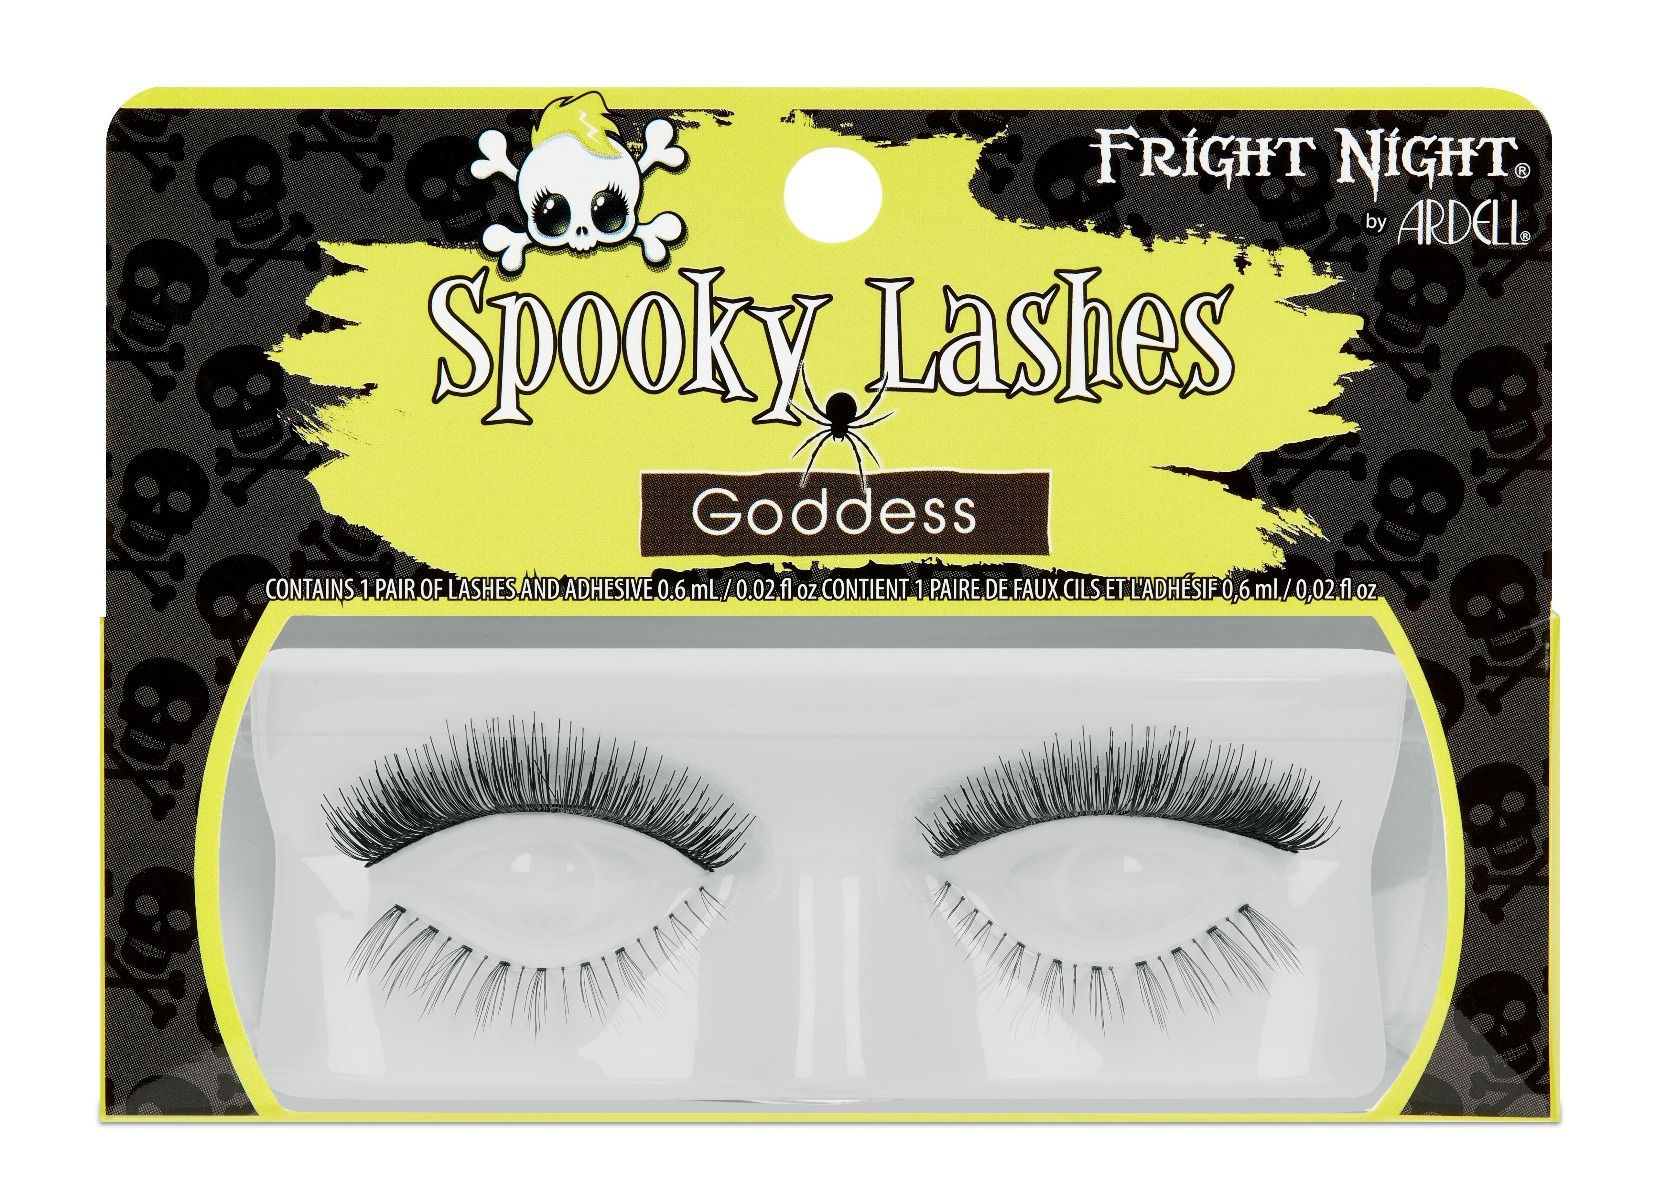 Ardell Fright Night Spooky Lashes - GODDESS